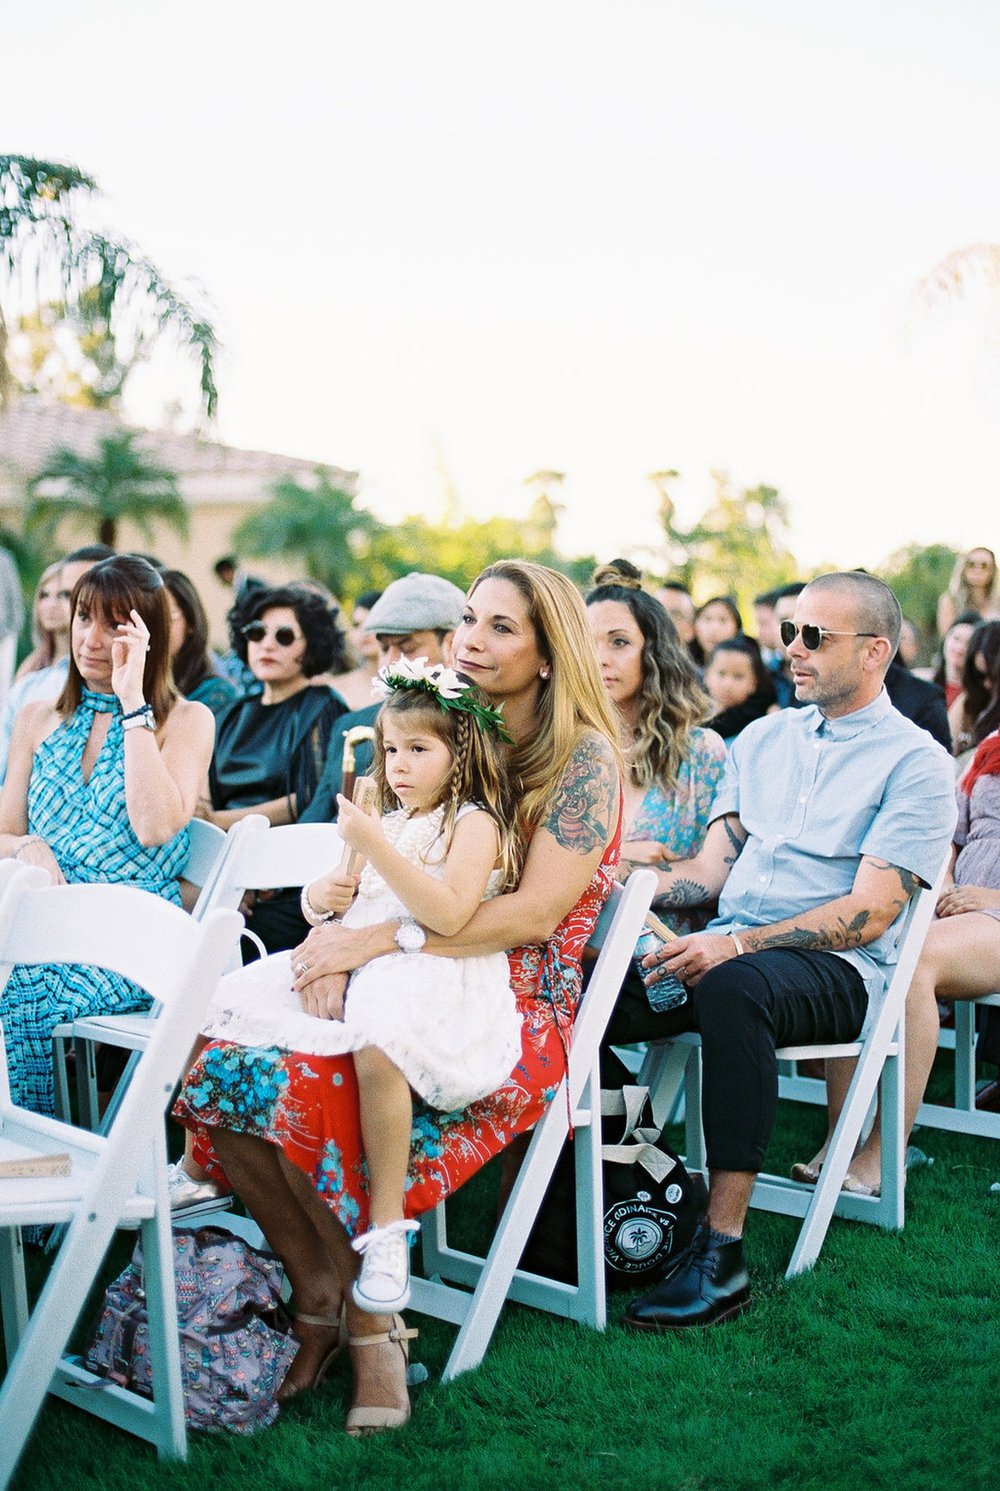 Phi and Alannas Backyard Wedding in Palm Springs California 24.jpg